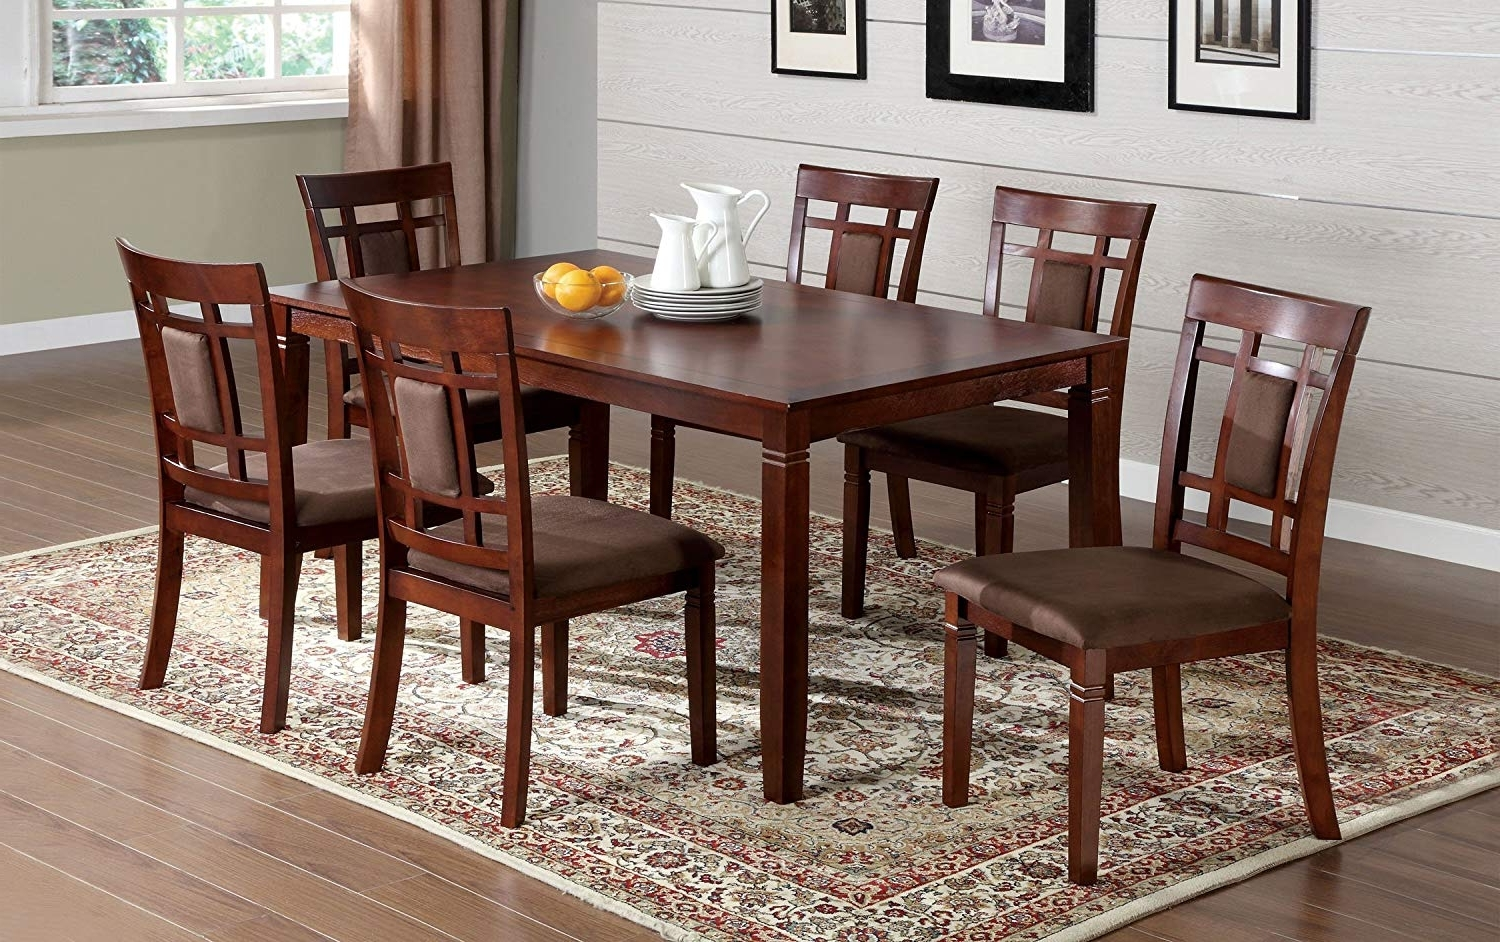 Most Recent Amazon – Furniture Of America Cartiere 7 Piece Dining Table Set With Regard To Dark Wood Dining Tables 6 Chairs (Gallery 9 of 25)